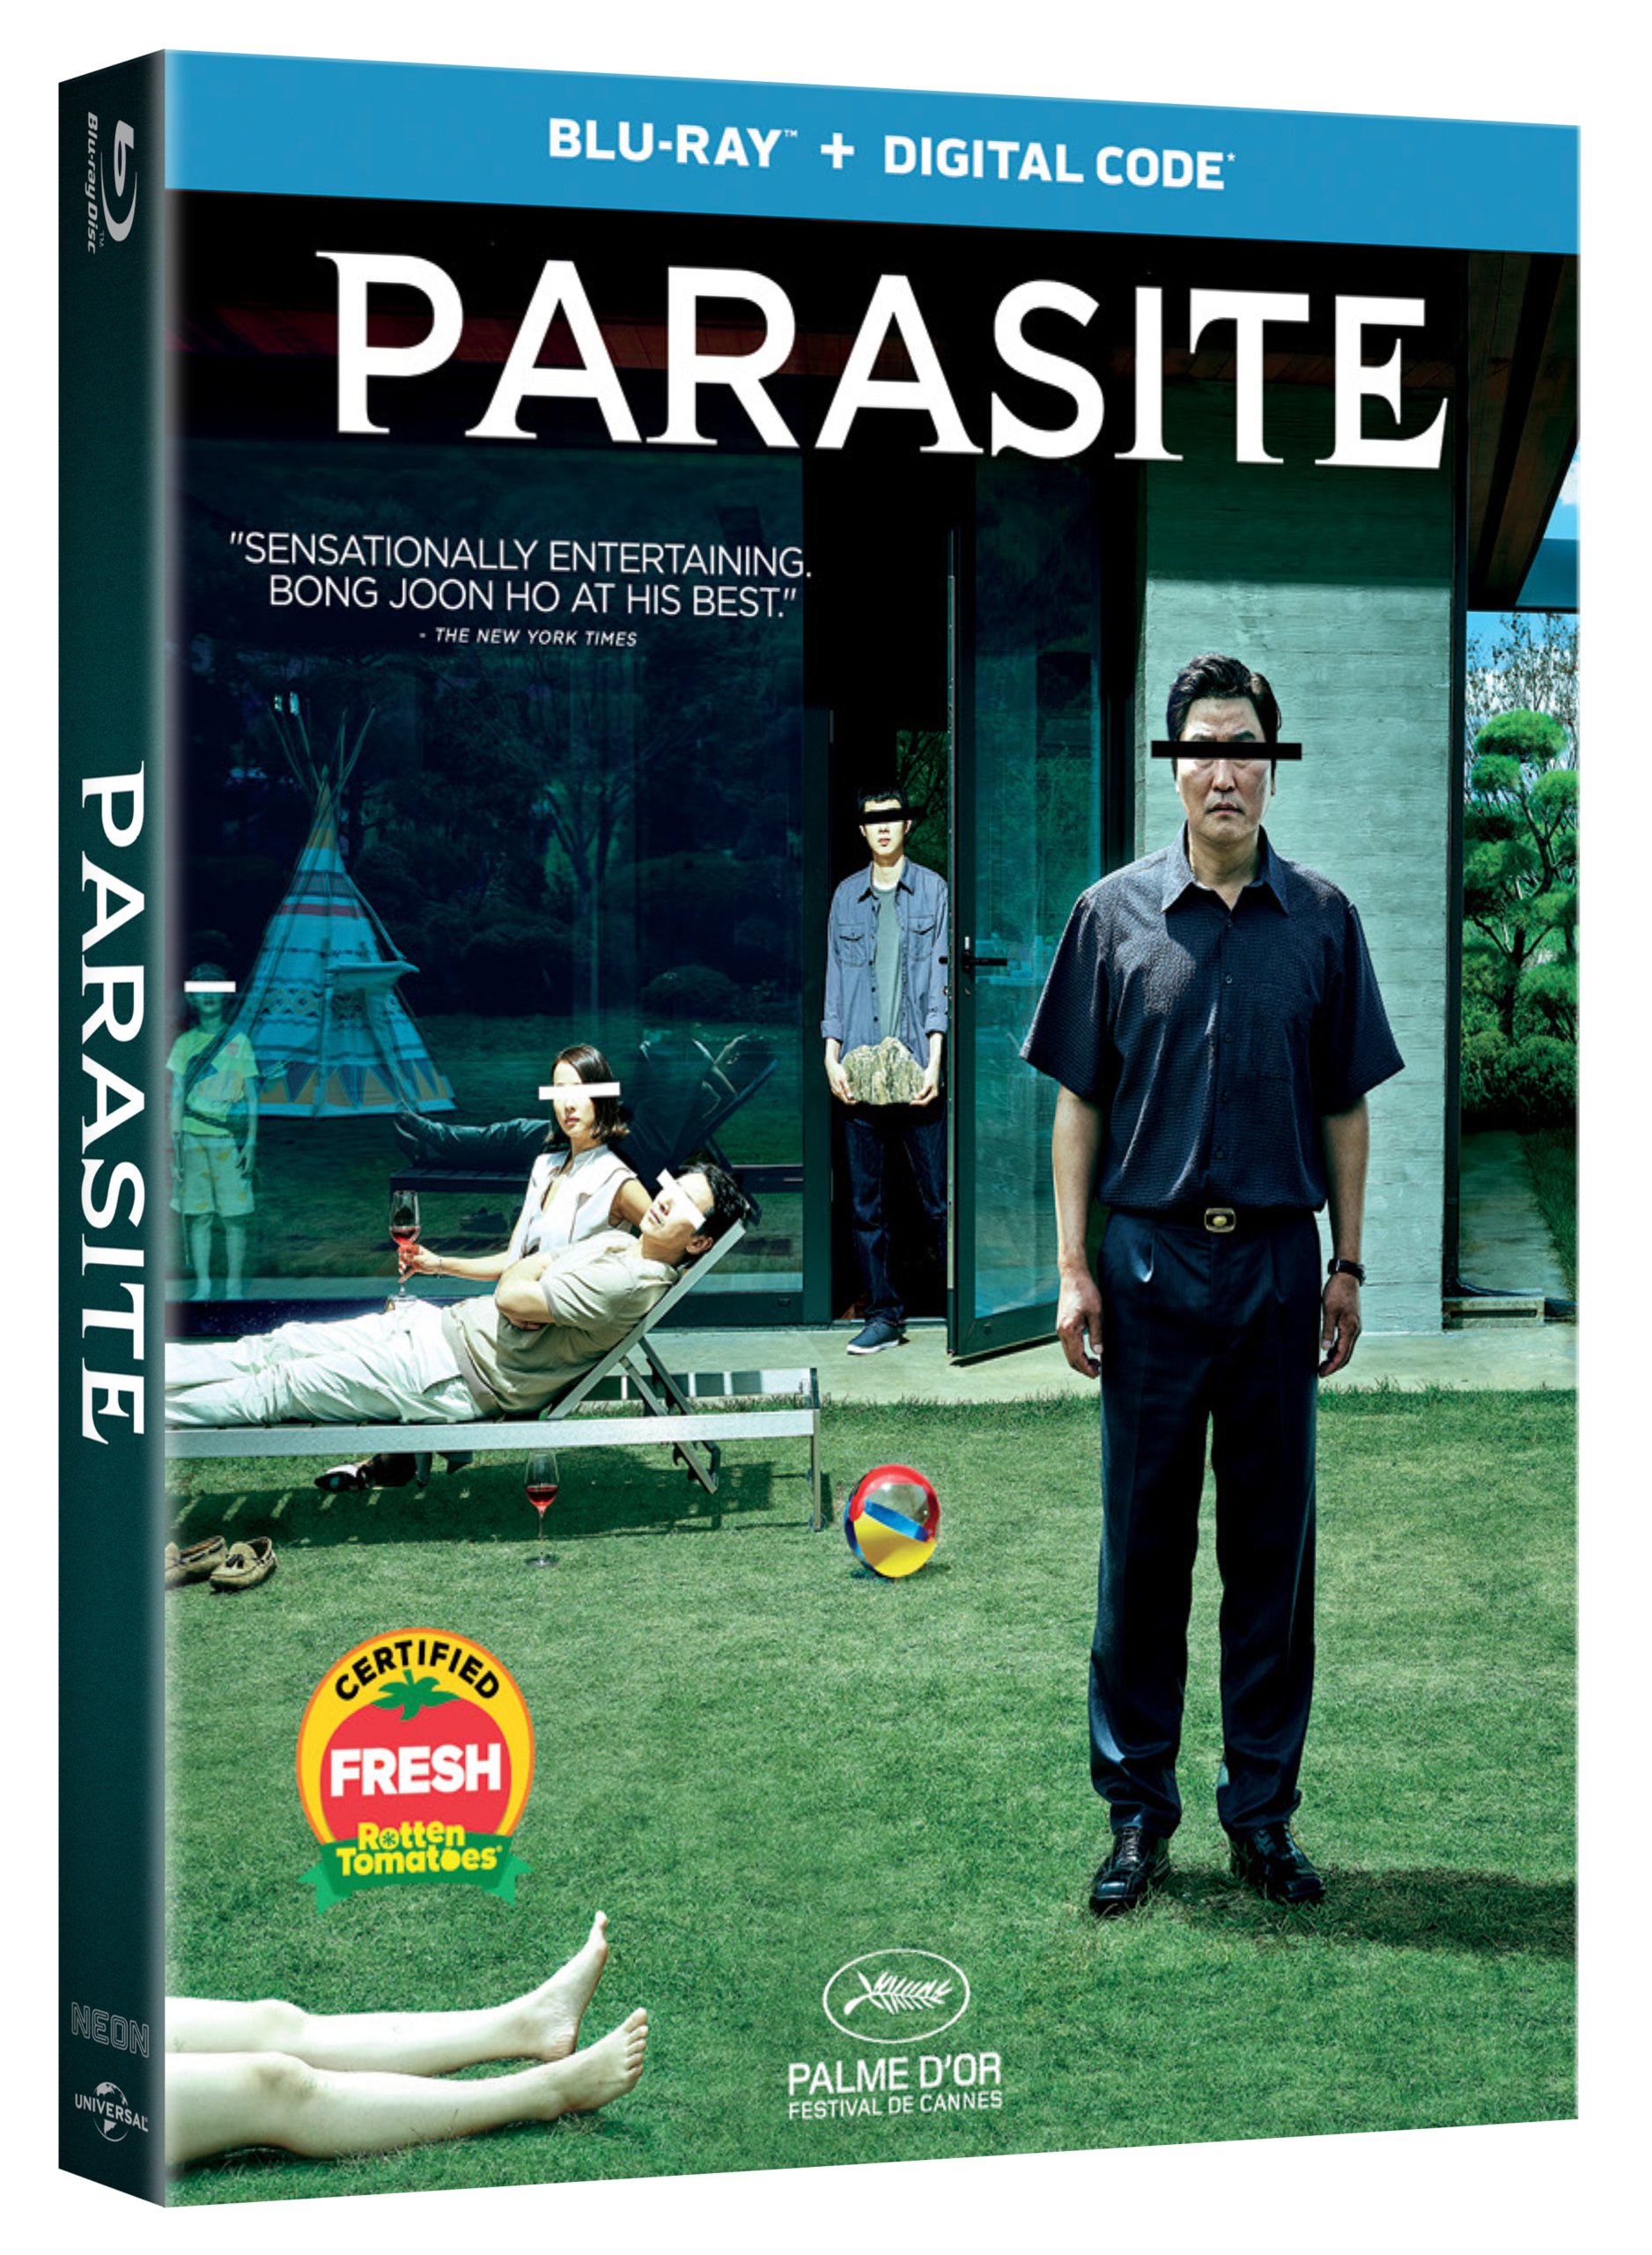 Parasite blu-ray box art